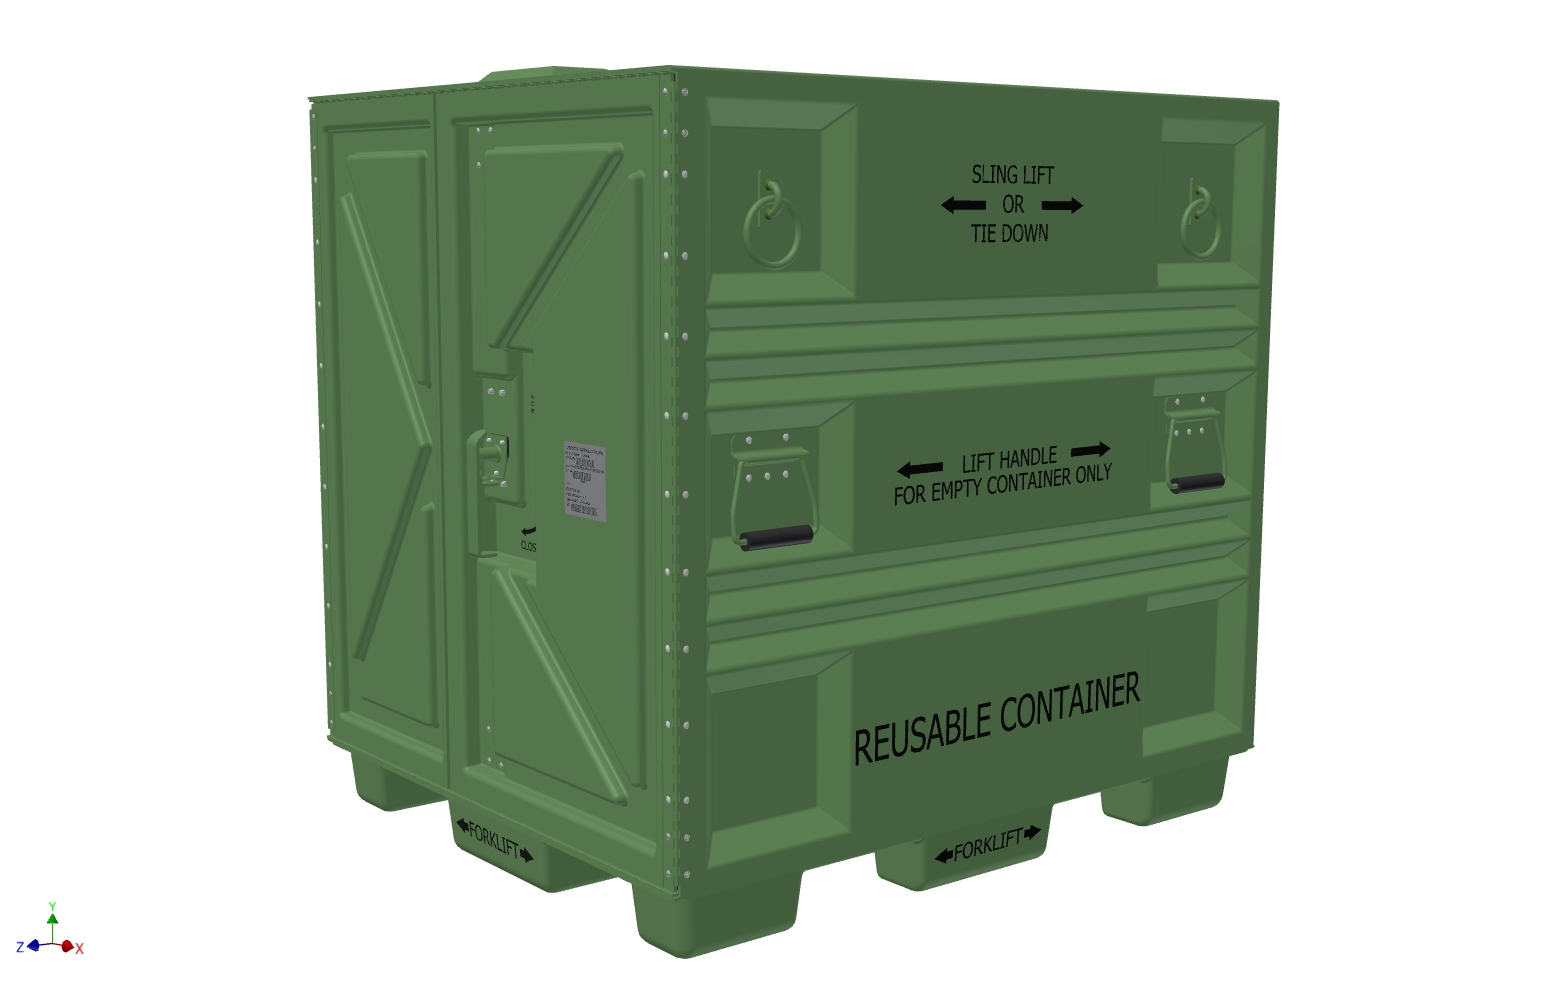 Palcon Container With Accessories.jpg